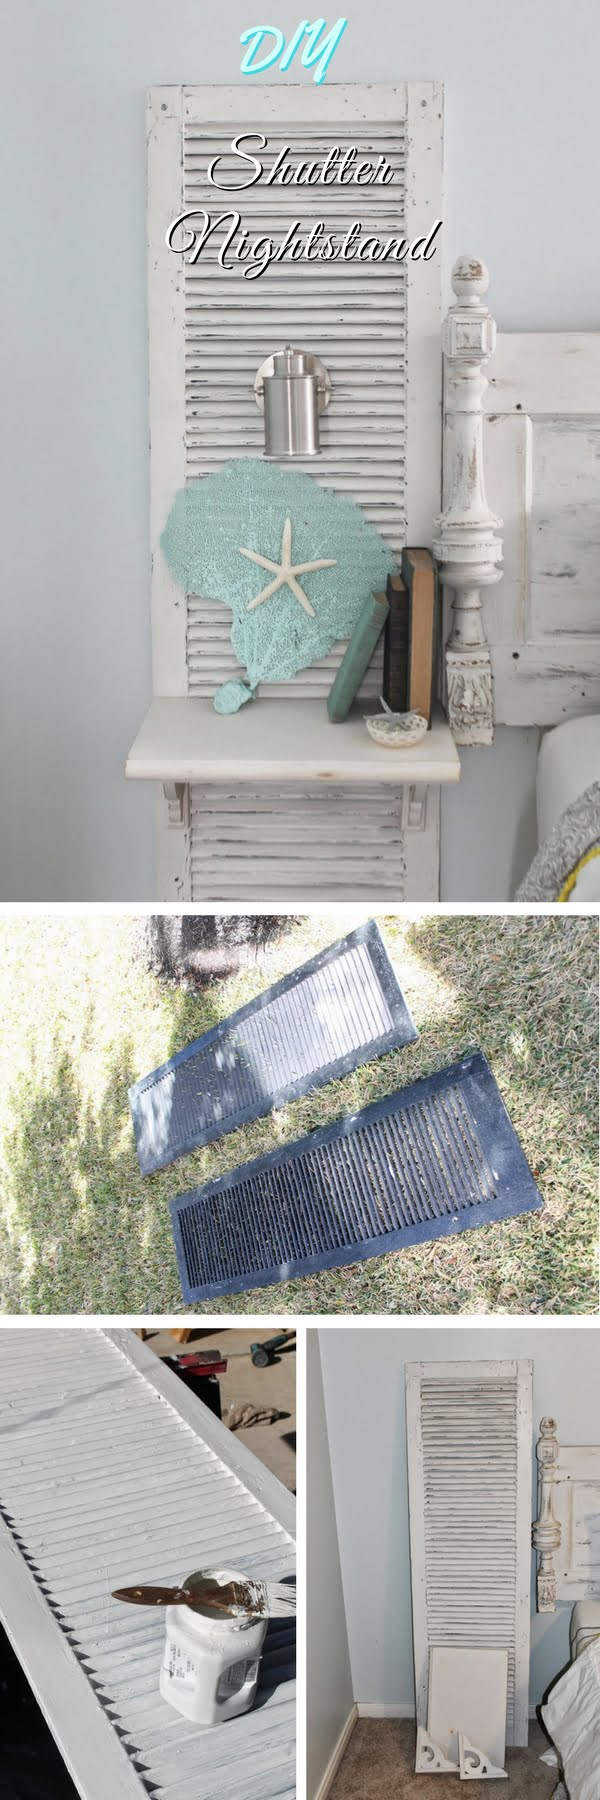 Check out how to make a DIY nightstand from an old shutter